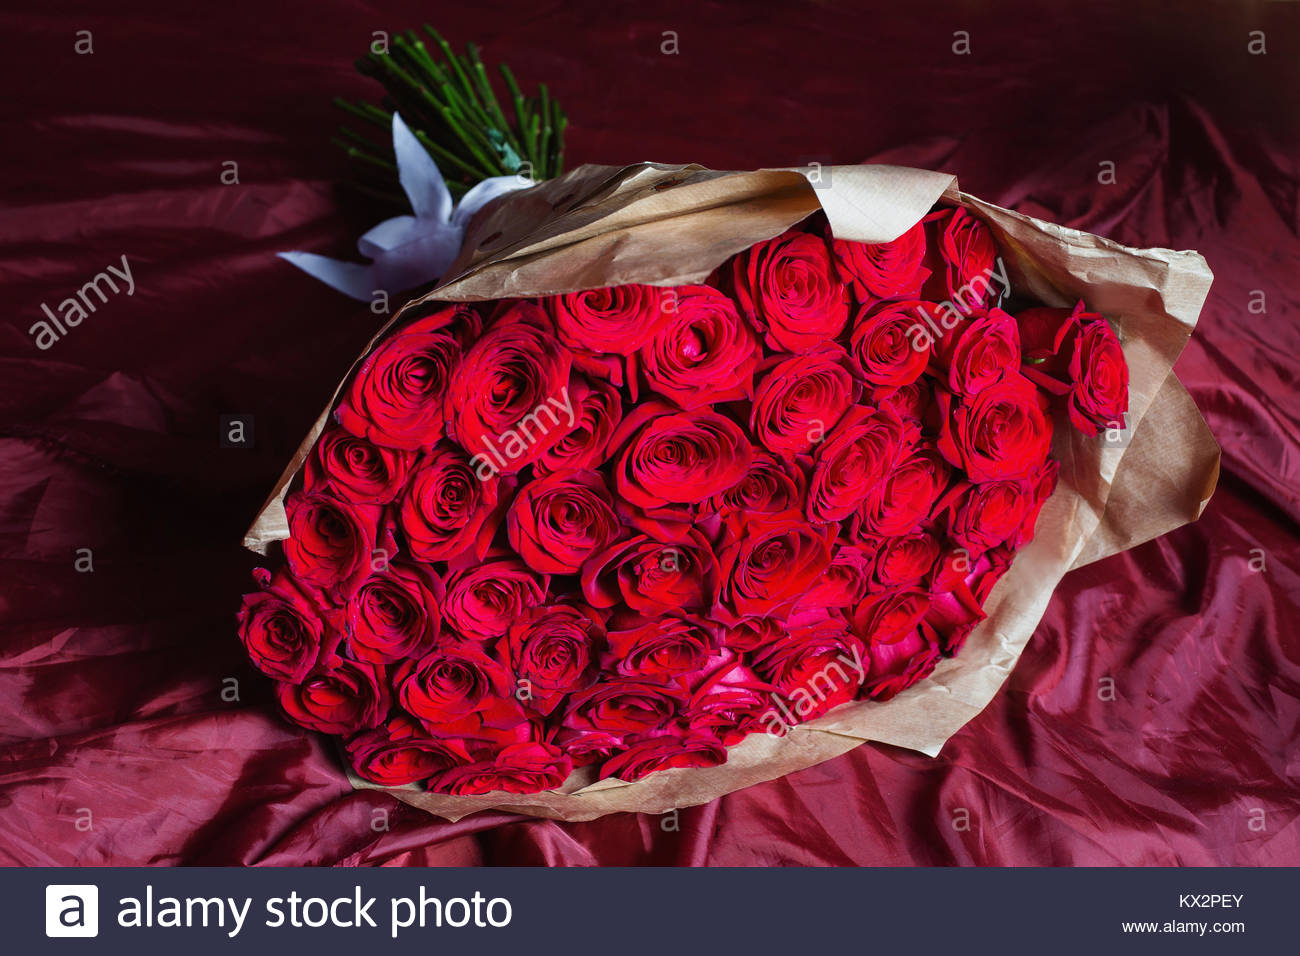 Big Beautiful Bouquet Of Red Roses Texture Colors A Gift For A